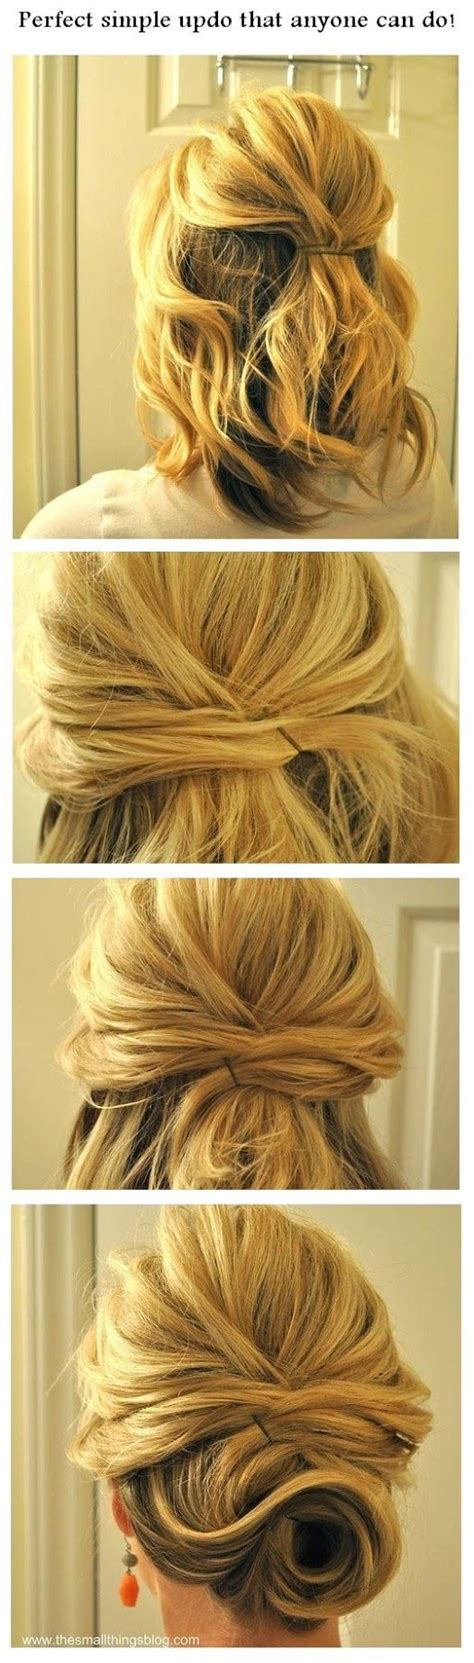 10 amazing step by step hairstyles for medium length hair